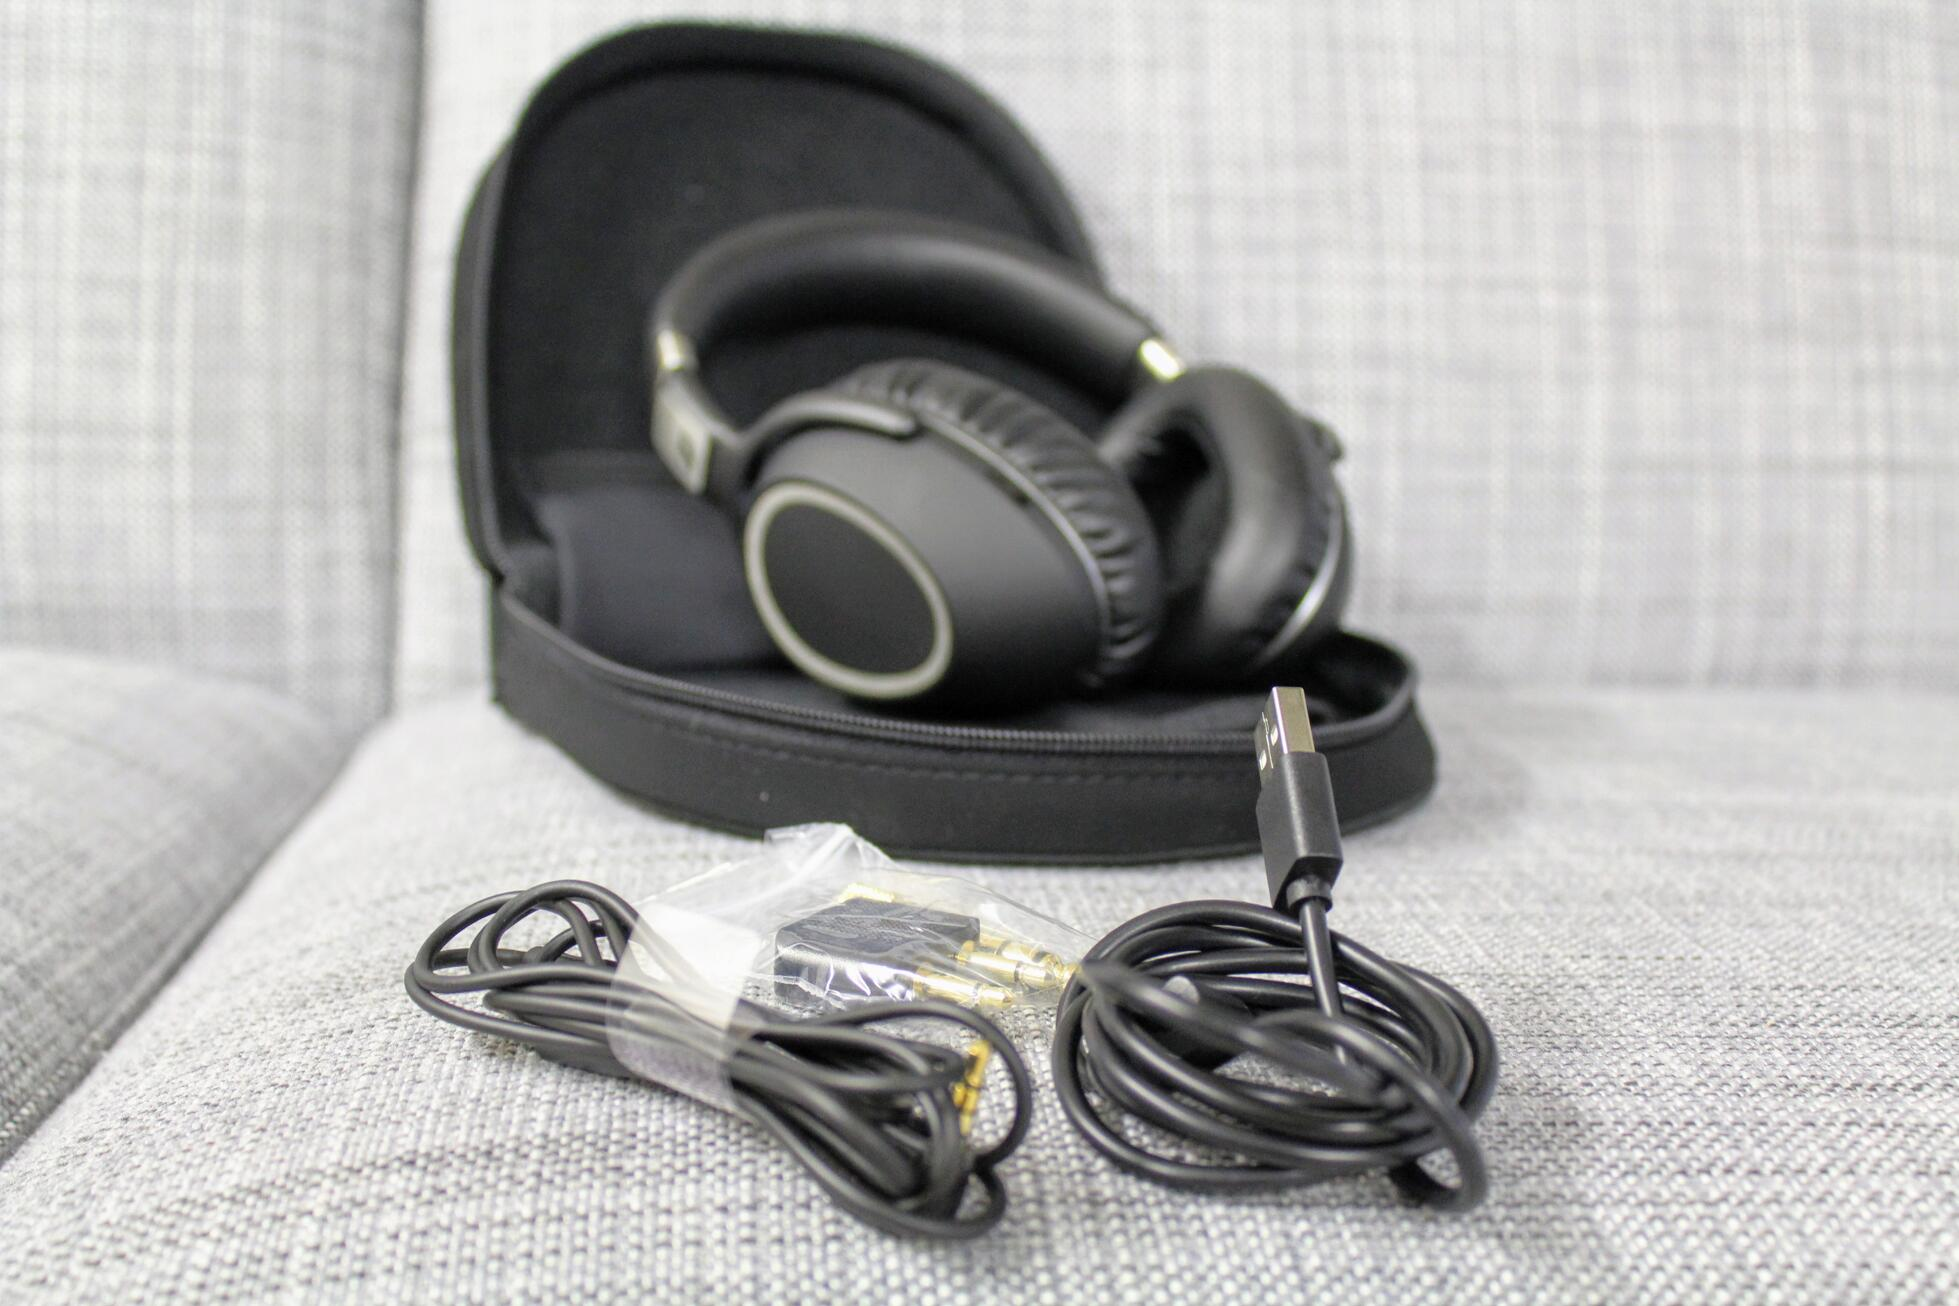 Sennheiser hd 4.50 btnc wireless headphones with active noise cancellation review